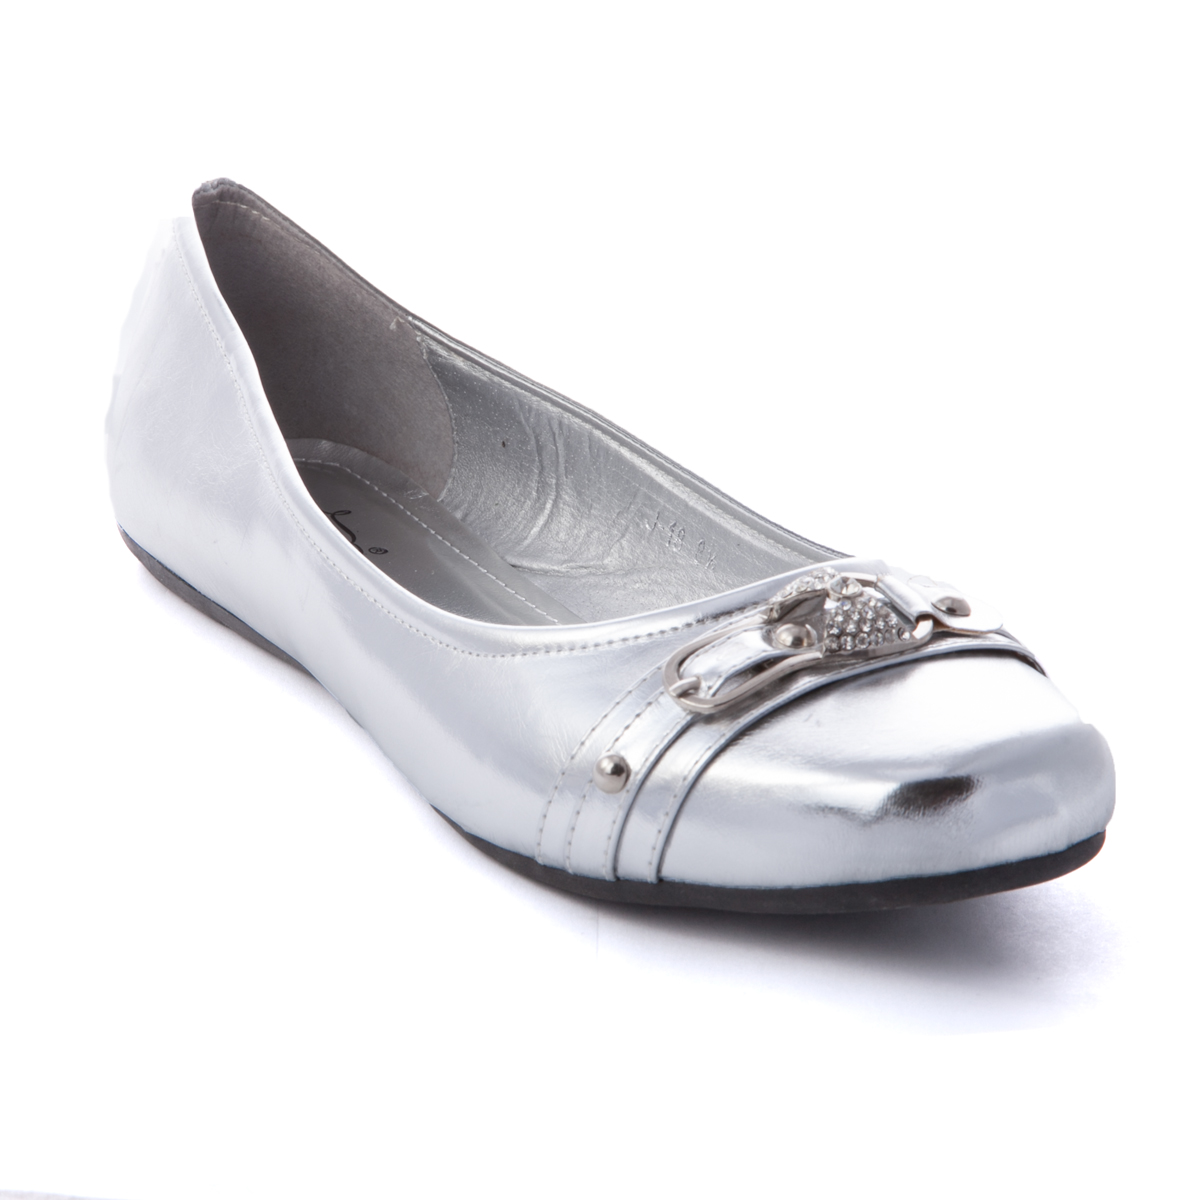 Women's Ballet Slip On Casual Flat Shoes Ballerina Loafer ...